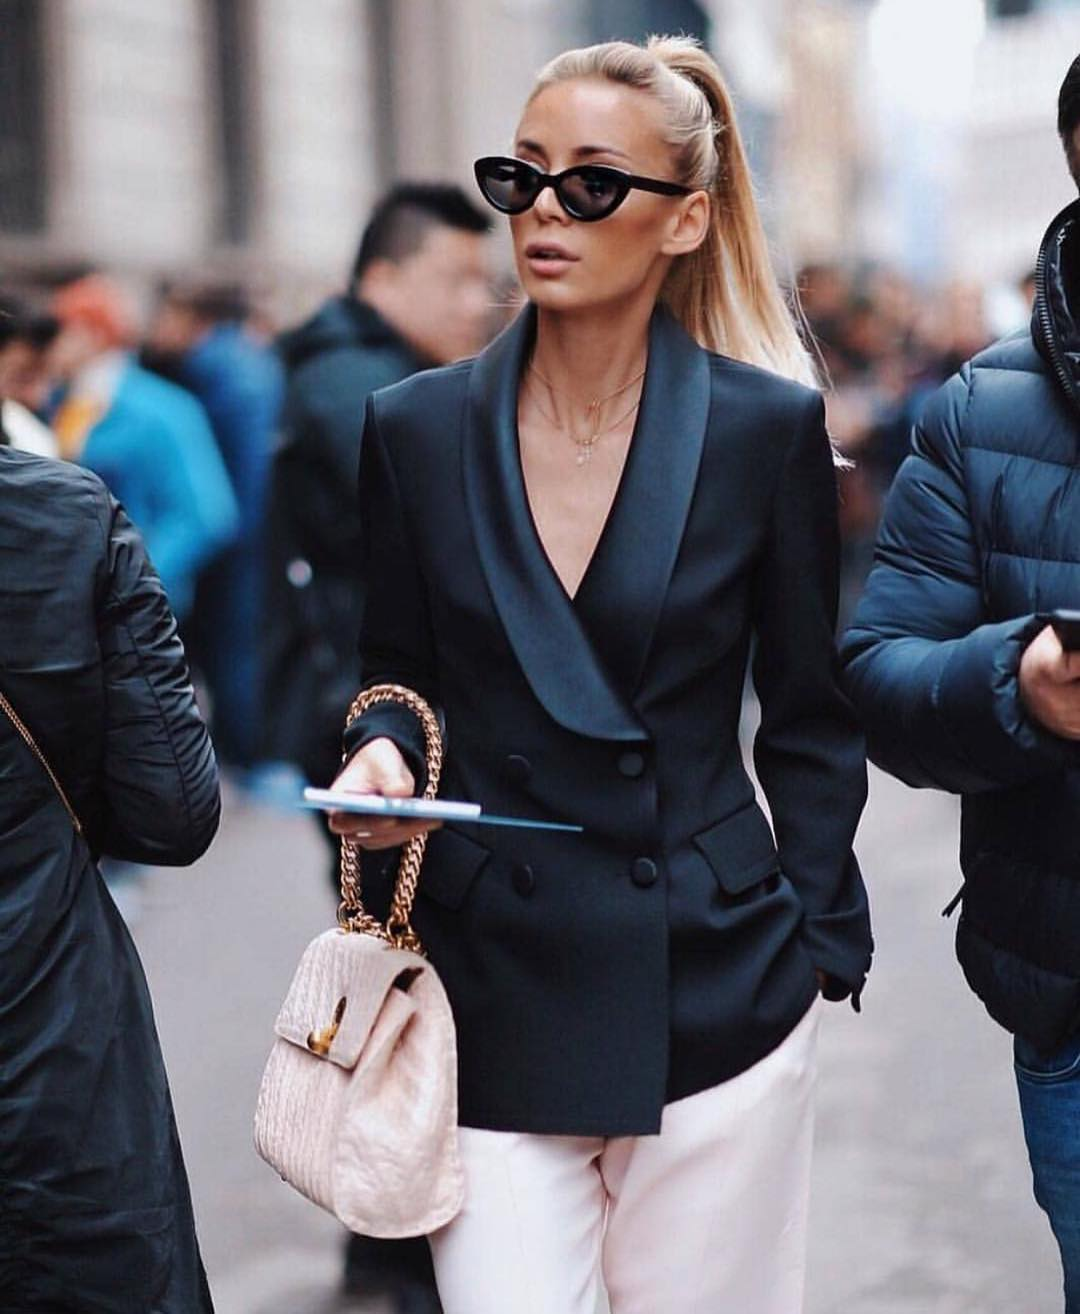 Black Double Breasted Blazer And White Wide Pants For Summer 2020